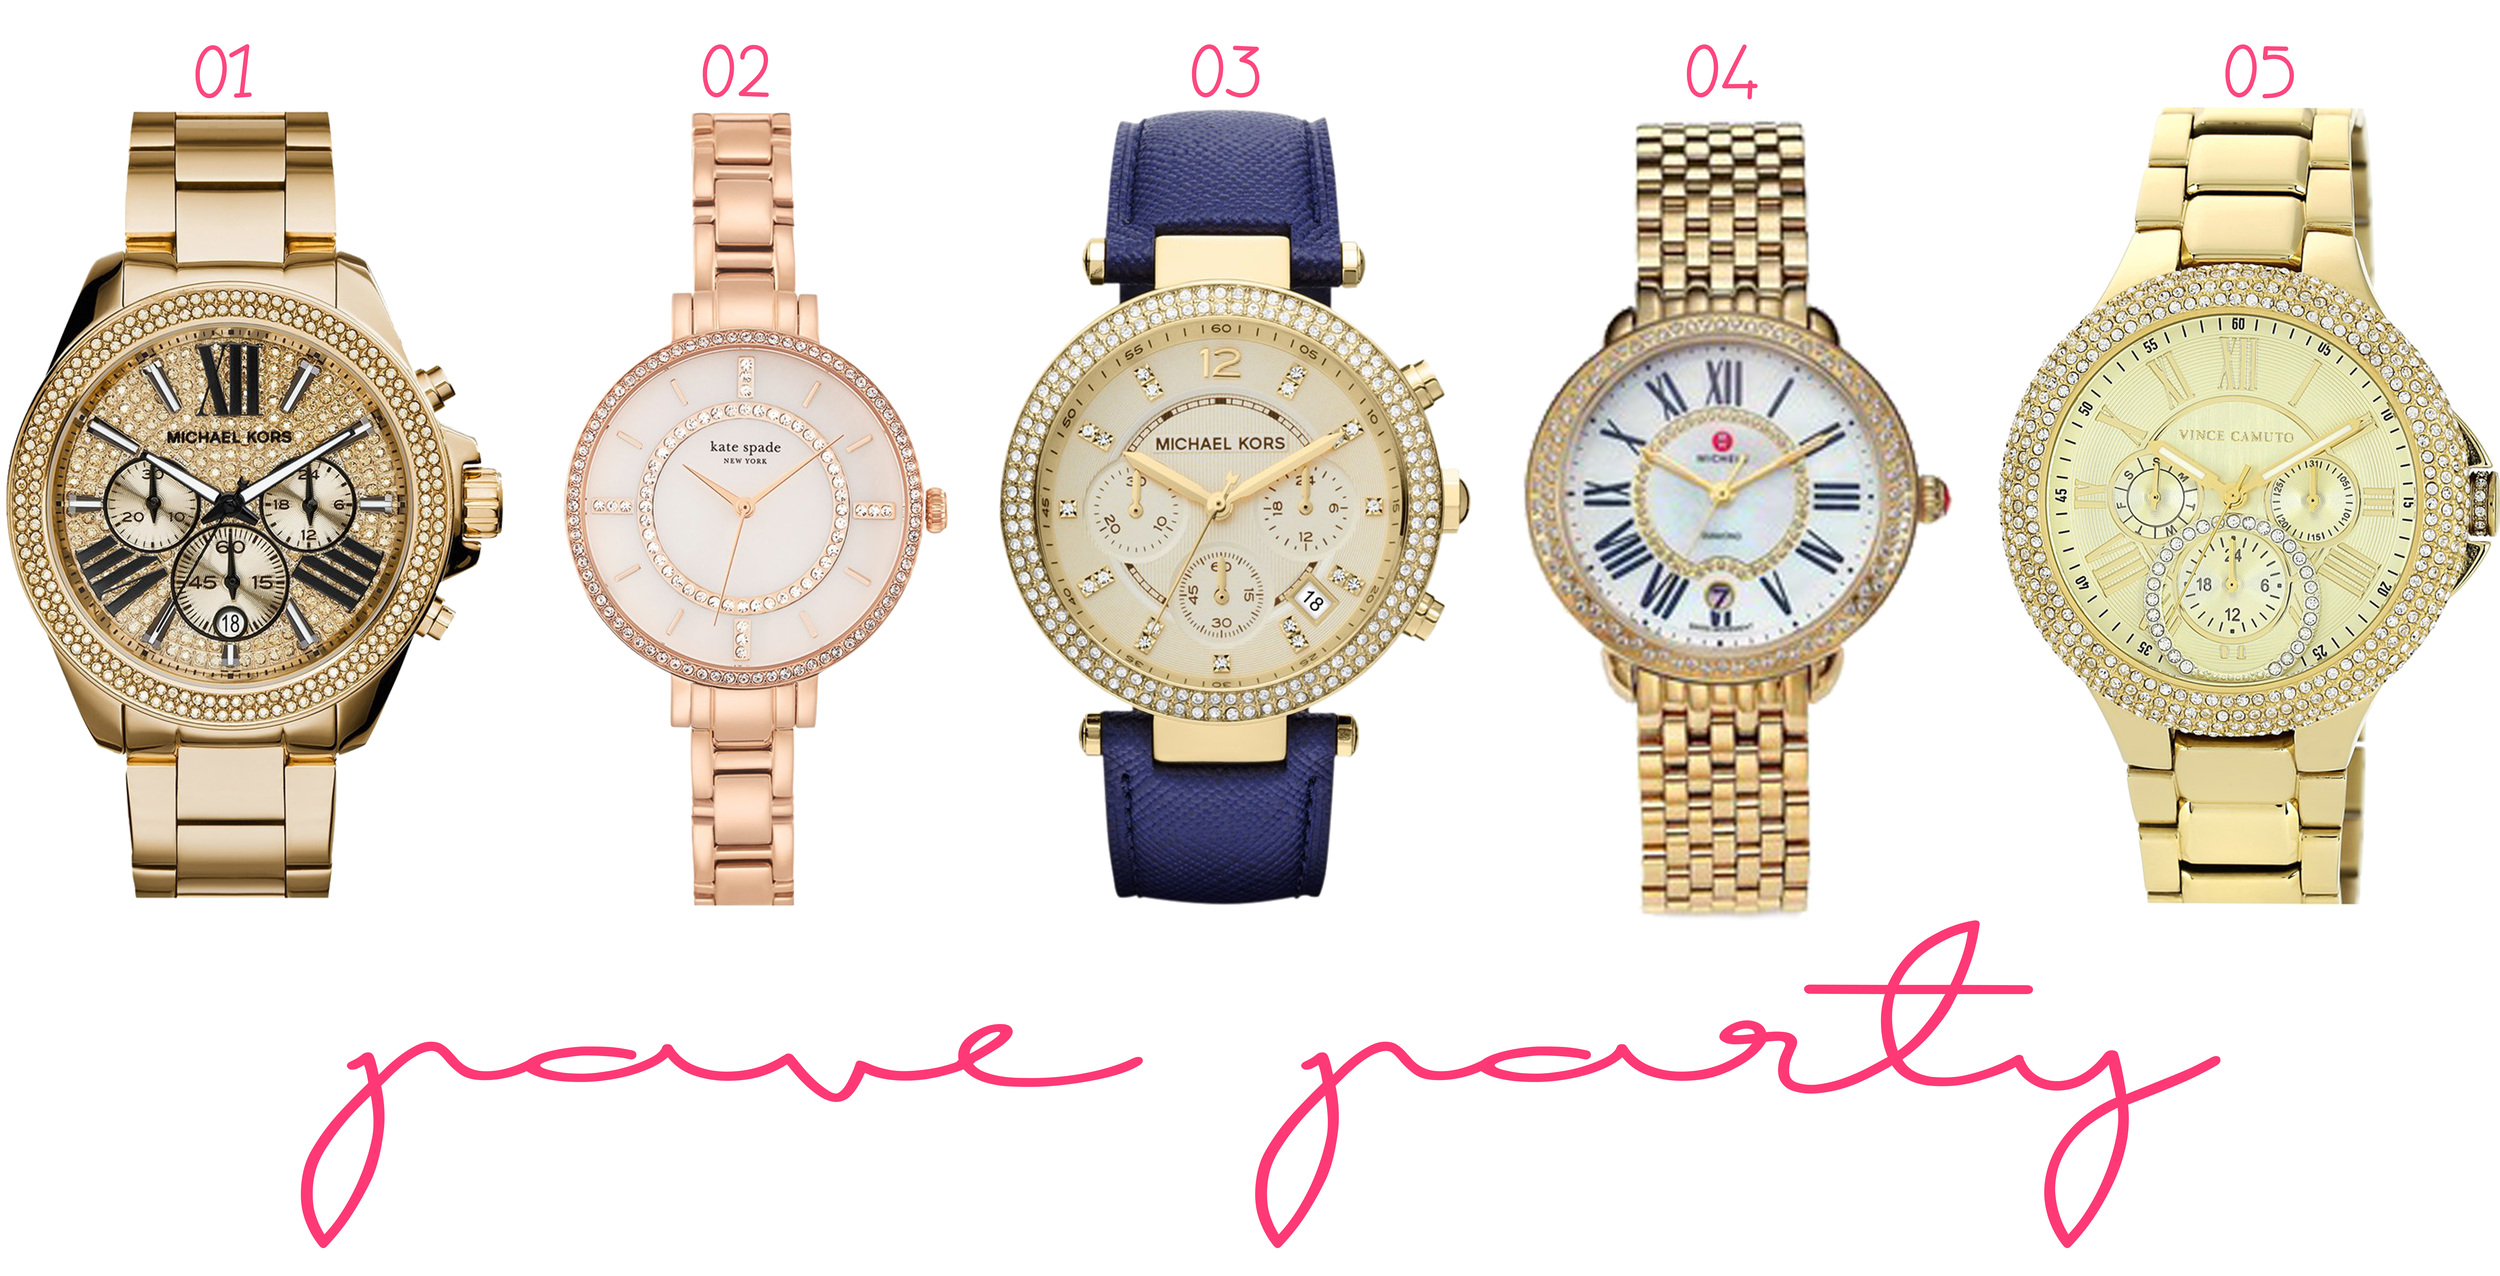 01.  Vince Camuto Crystal Bezel Multifunction Bracelet Watch  ($250) - 02.  Kate Spade New York 'Gramercy' Crystal Bezel Bracelet Watch  ($275) - 03.  MICHAEL Michael Kors 'Parker' Chronograph Leather Watch  ($250) - 04.  MICHELE 'Serein 16 Diamond' Watch Case  ($1,945) - 05.  MICHAEL Michael Kors 'Wren' Pavé Dial Chronograph Bracelet Watch  ($375)